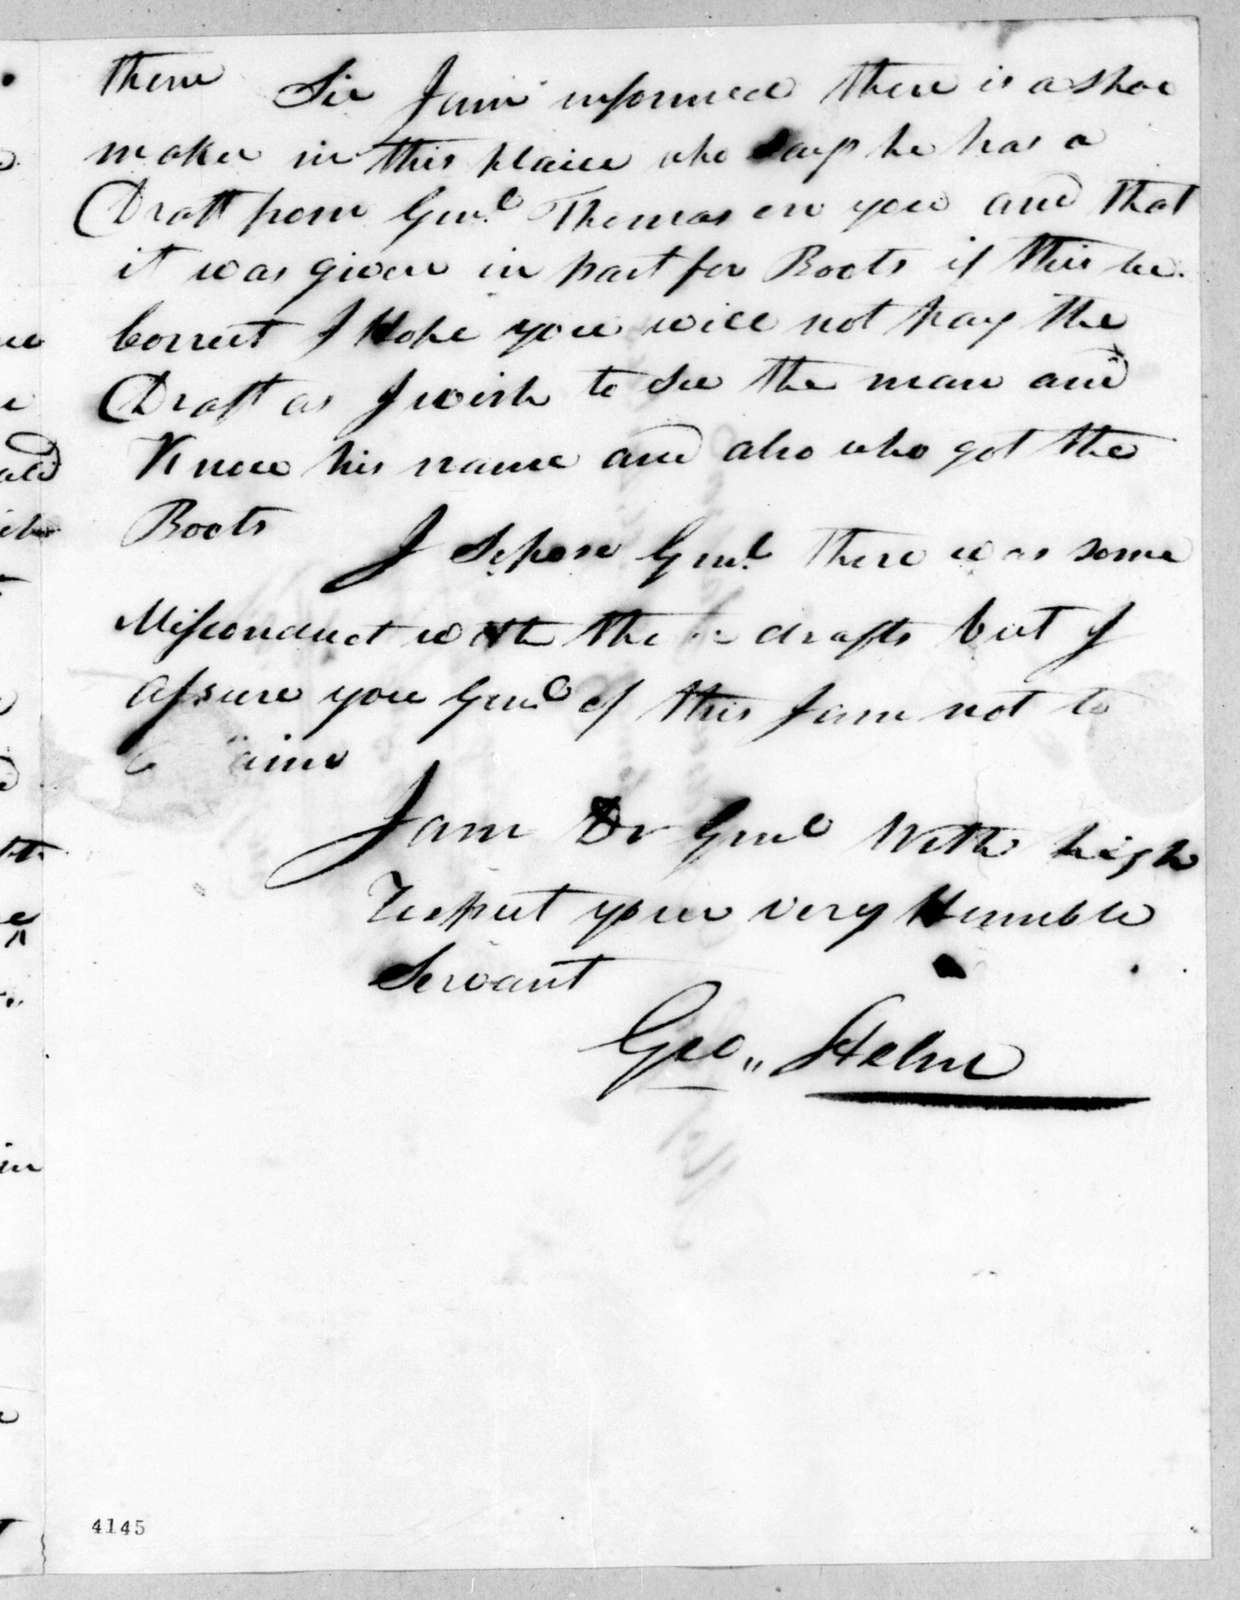 George Helm to Andrew Jackson, August 15, 1815